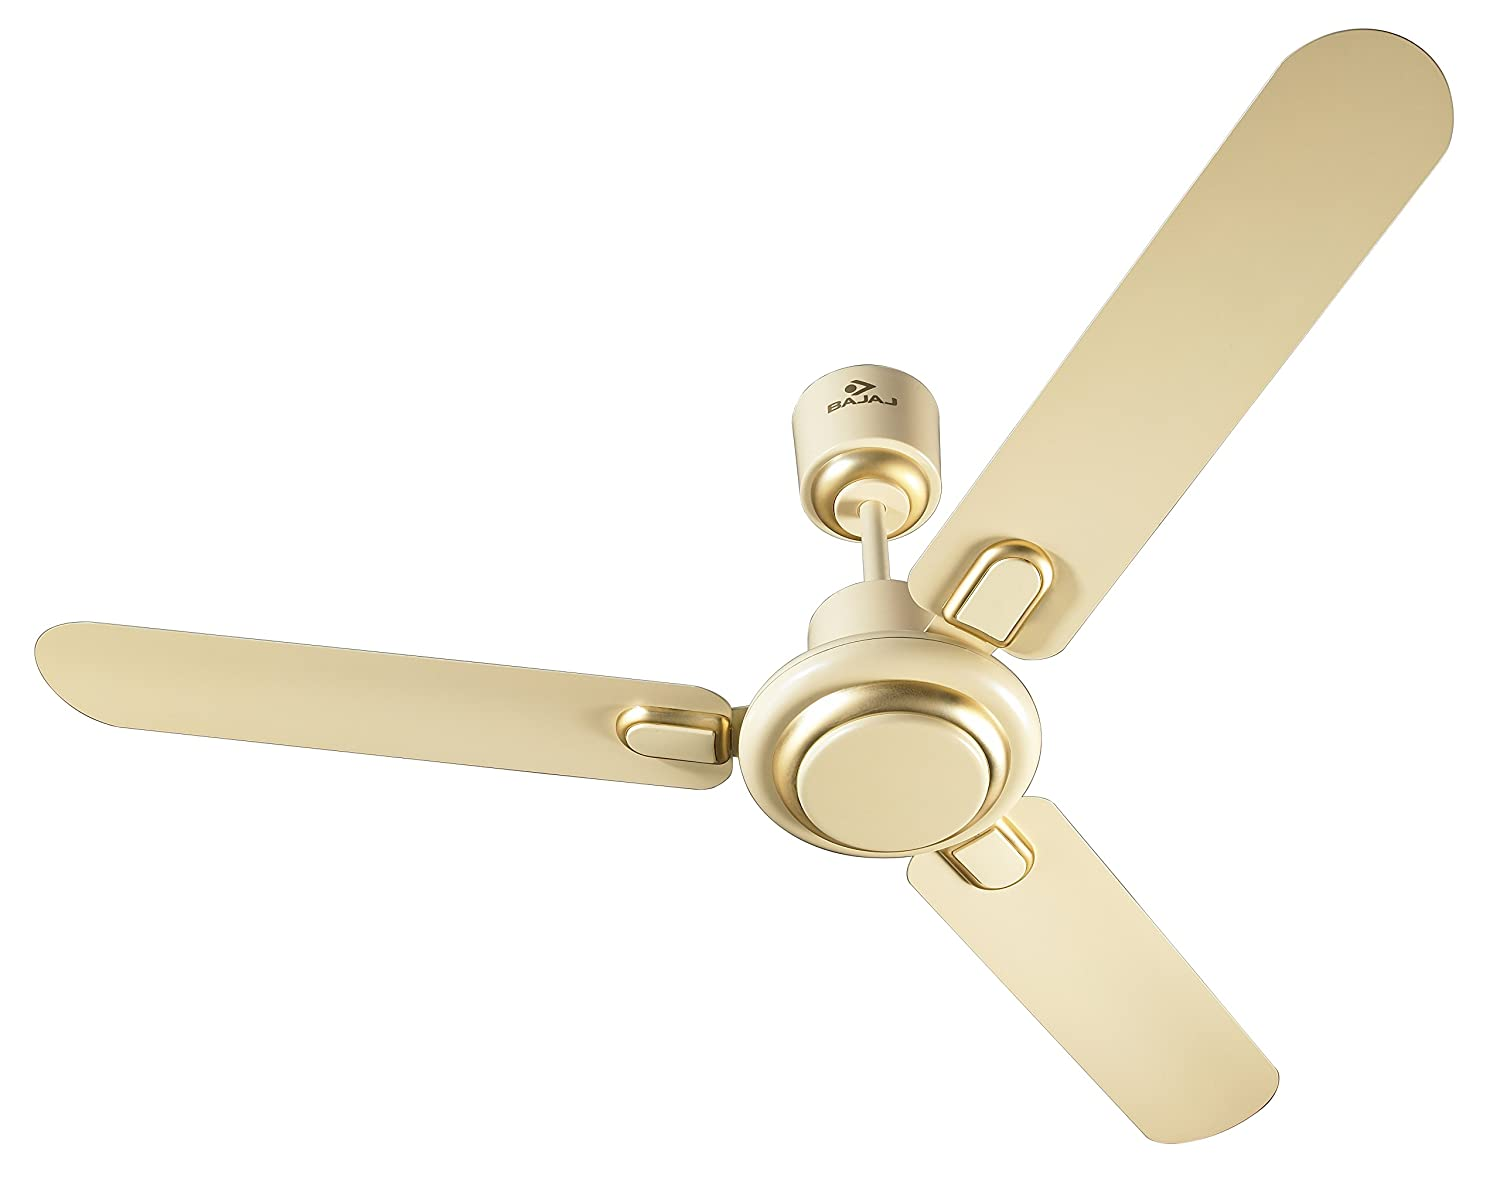 Buy bajaj regal gold 1400 mm premium ceiling fan ivory online at buy bajaj regal gold 1400 mm premium ceiling fan ivory online at low prices in india amazon aloadofball Image collections